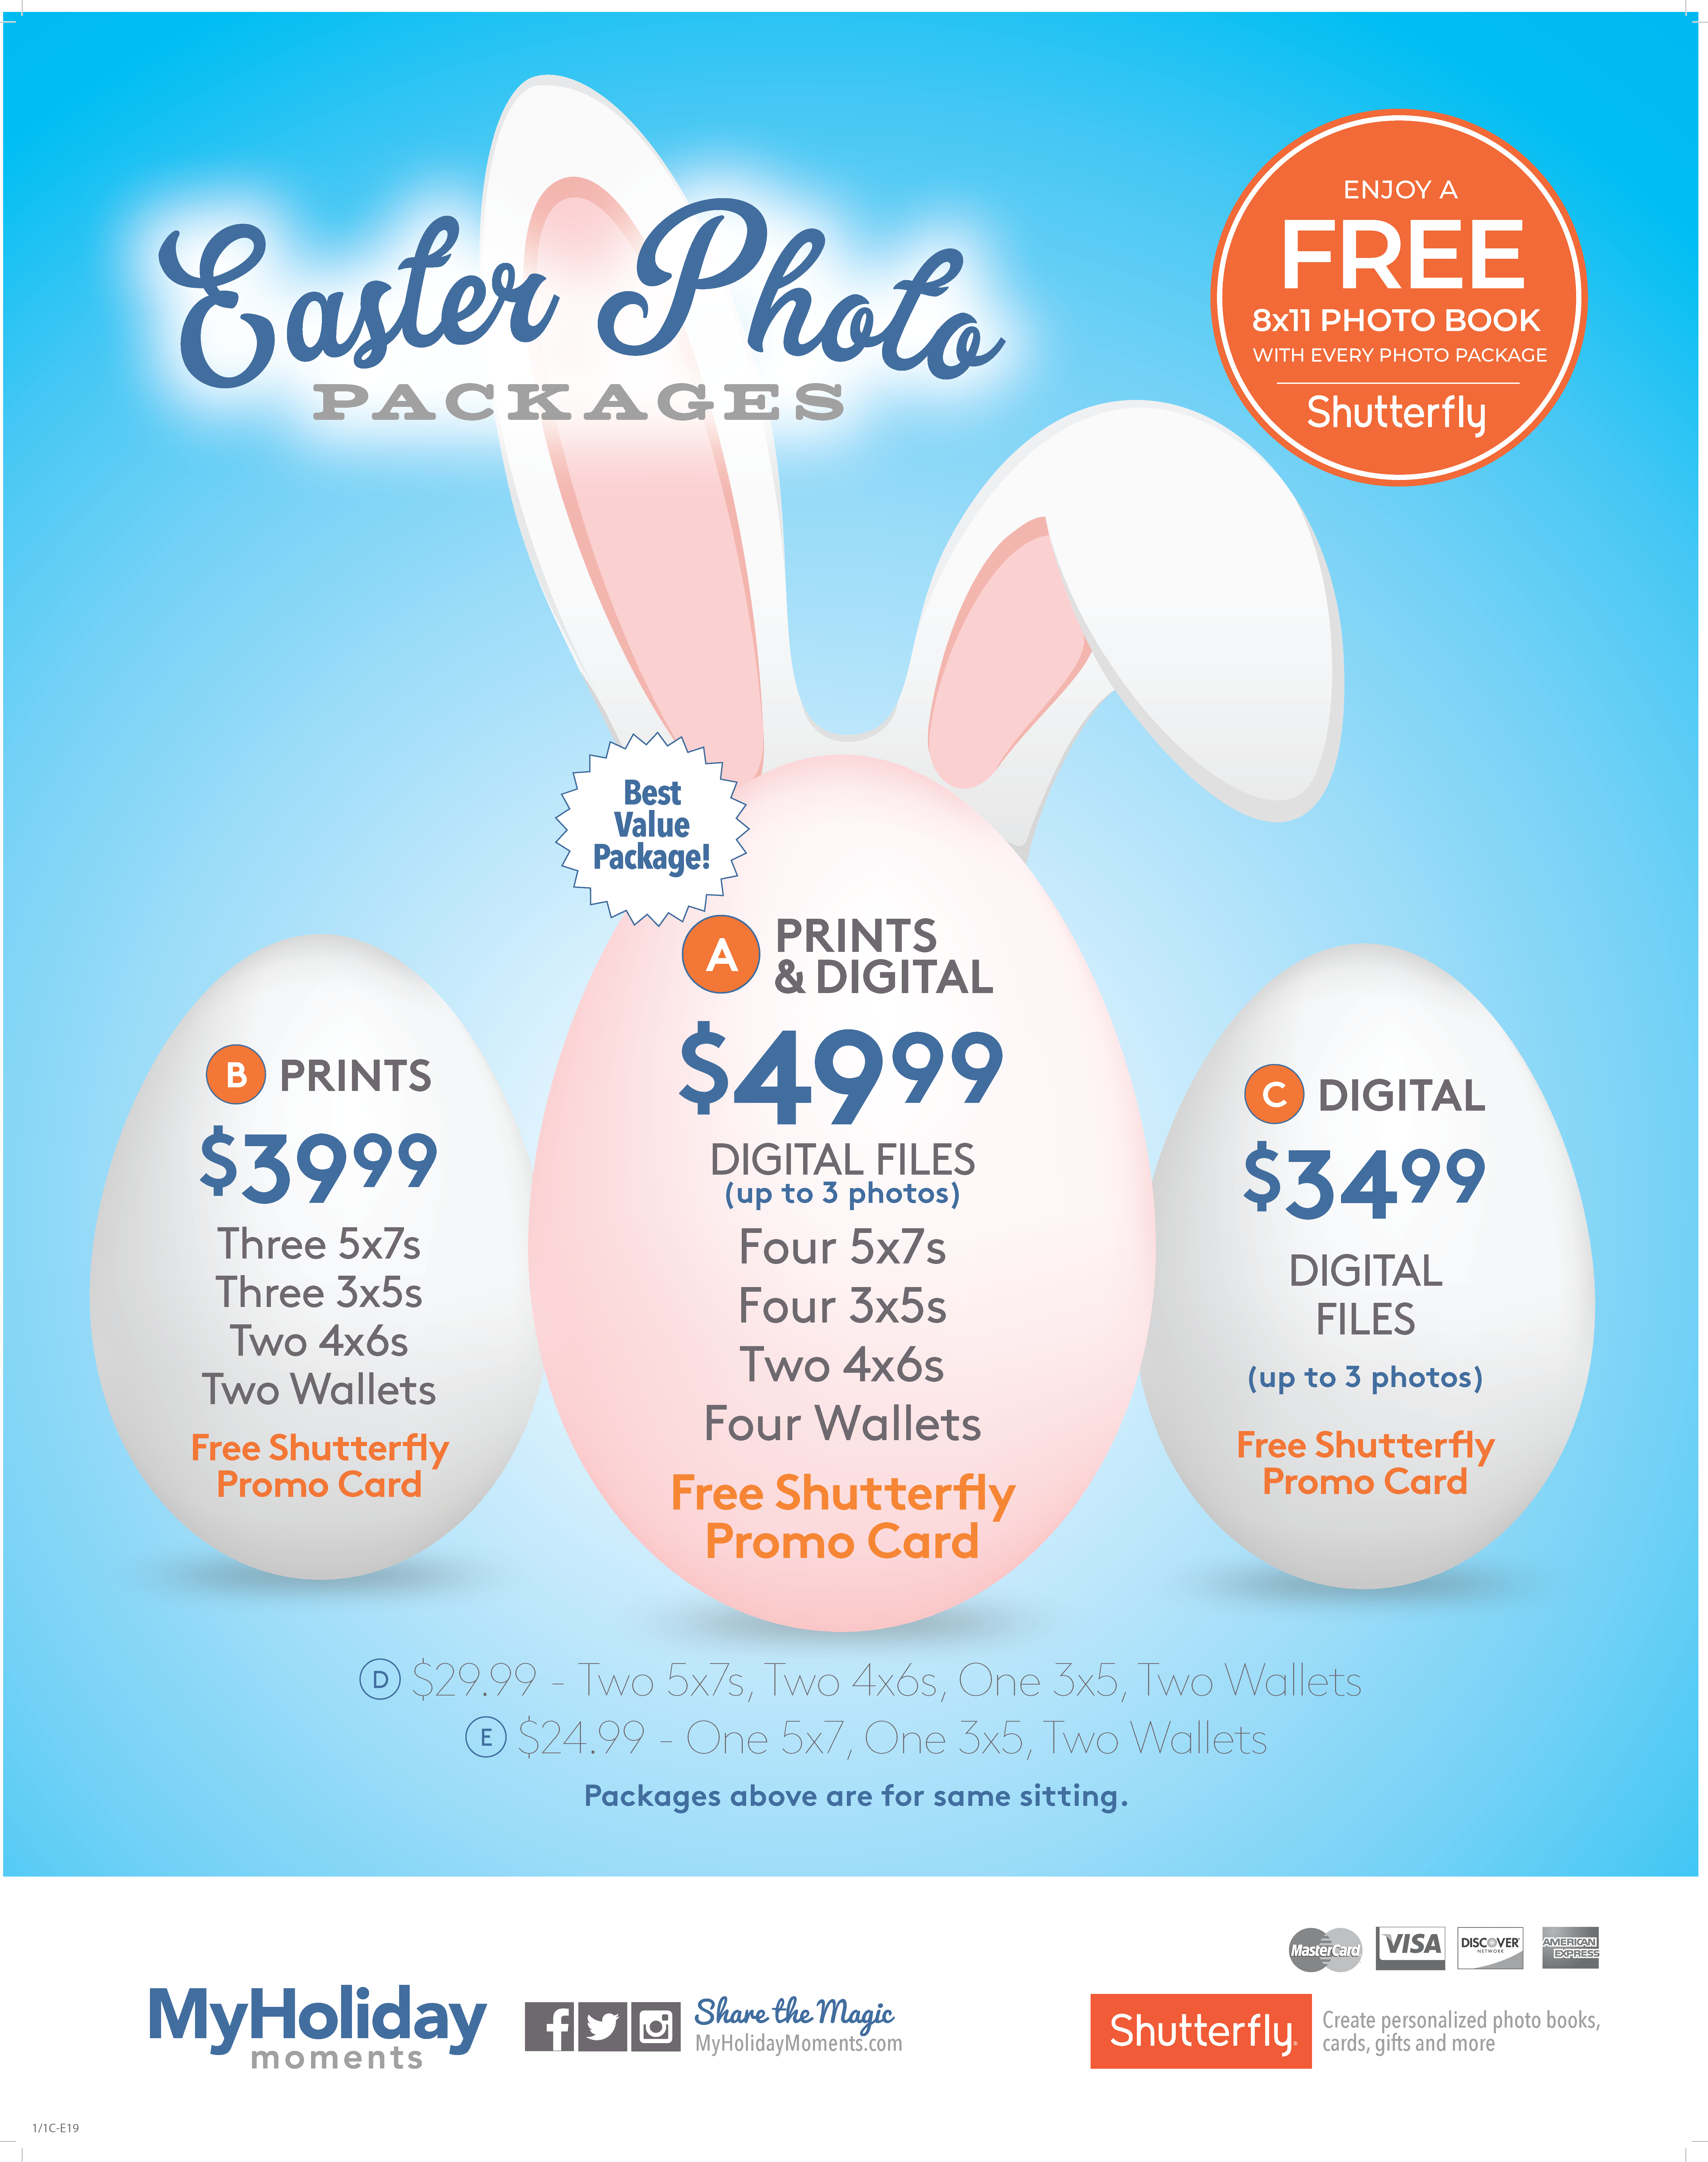 Easter Bunny Pricing